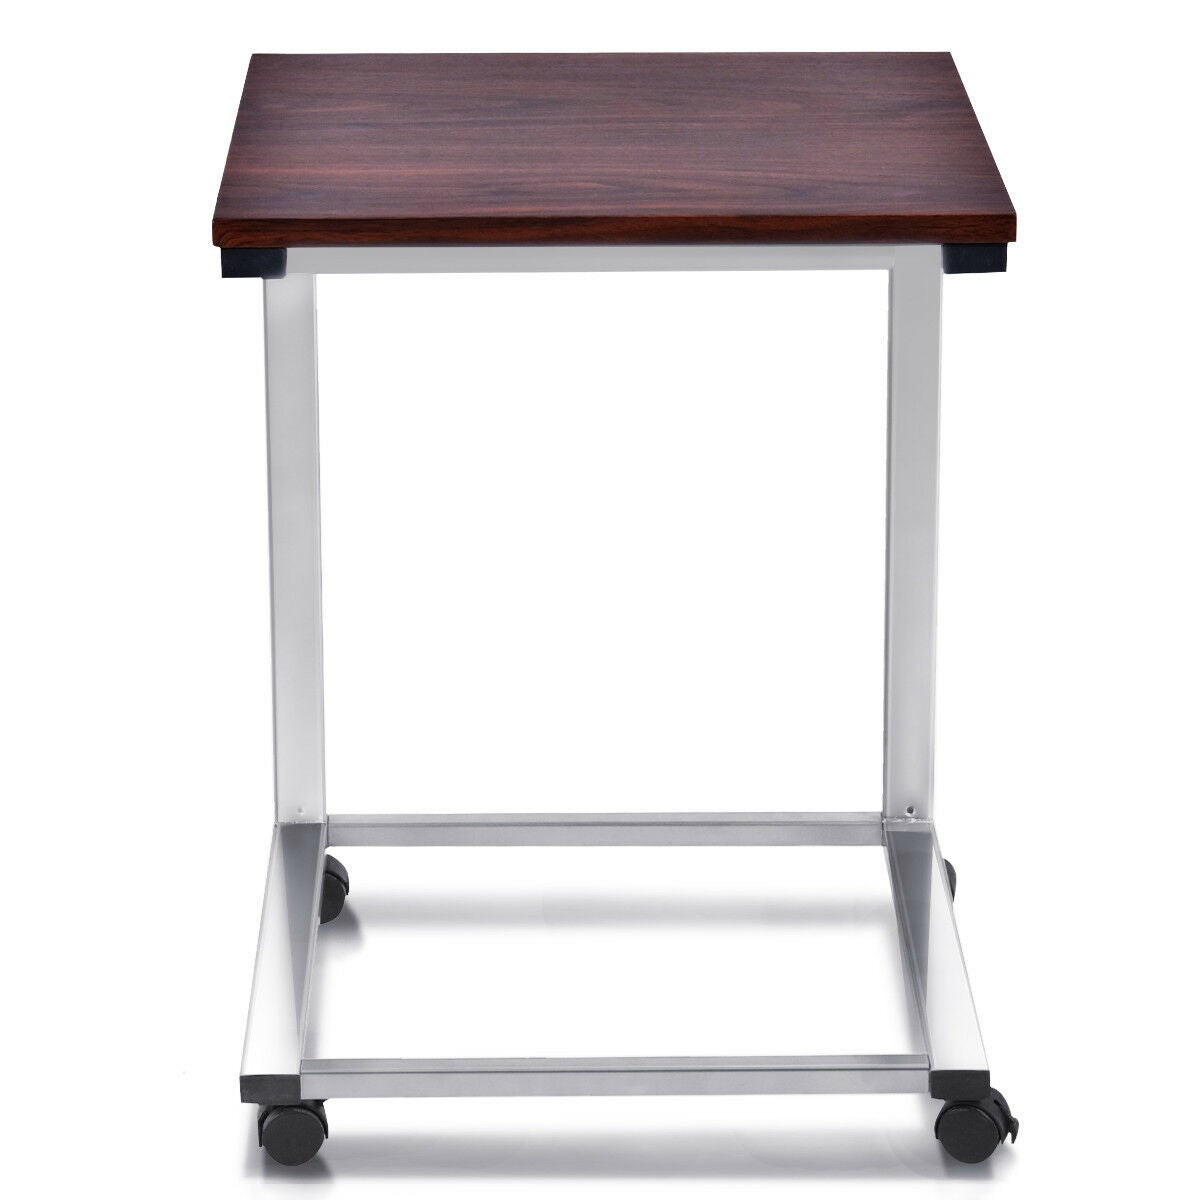 Shop Costway Coffee Tray Sofa Side End Table Lap Stand Tv Snack